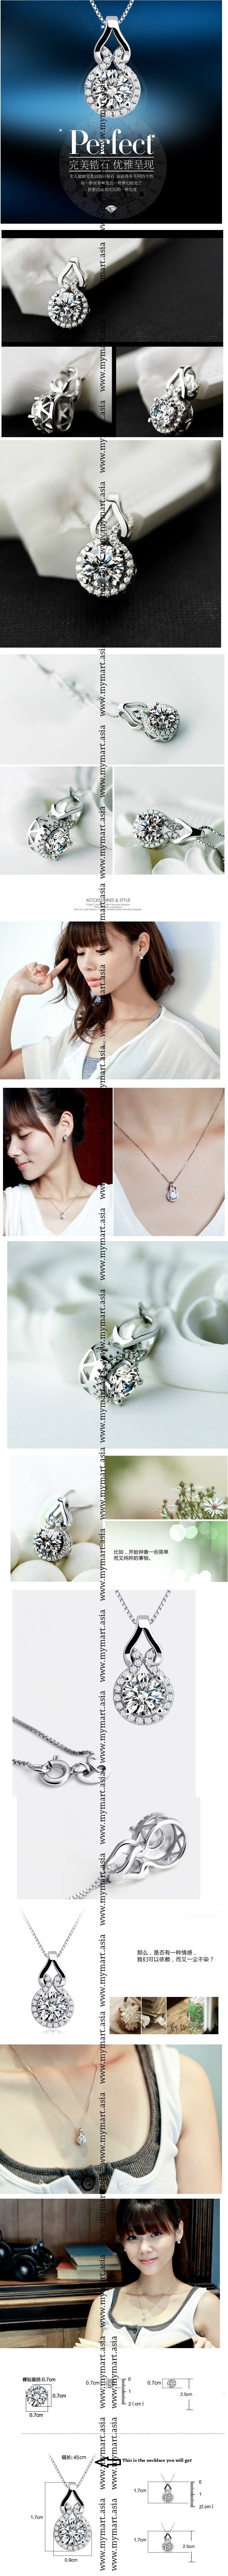 S925 Silver Zircon Unique Design Pendant Necklace Set